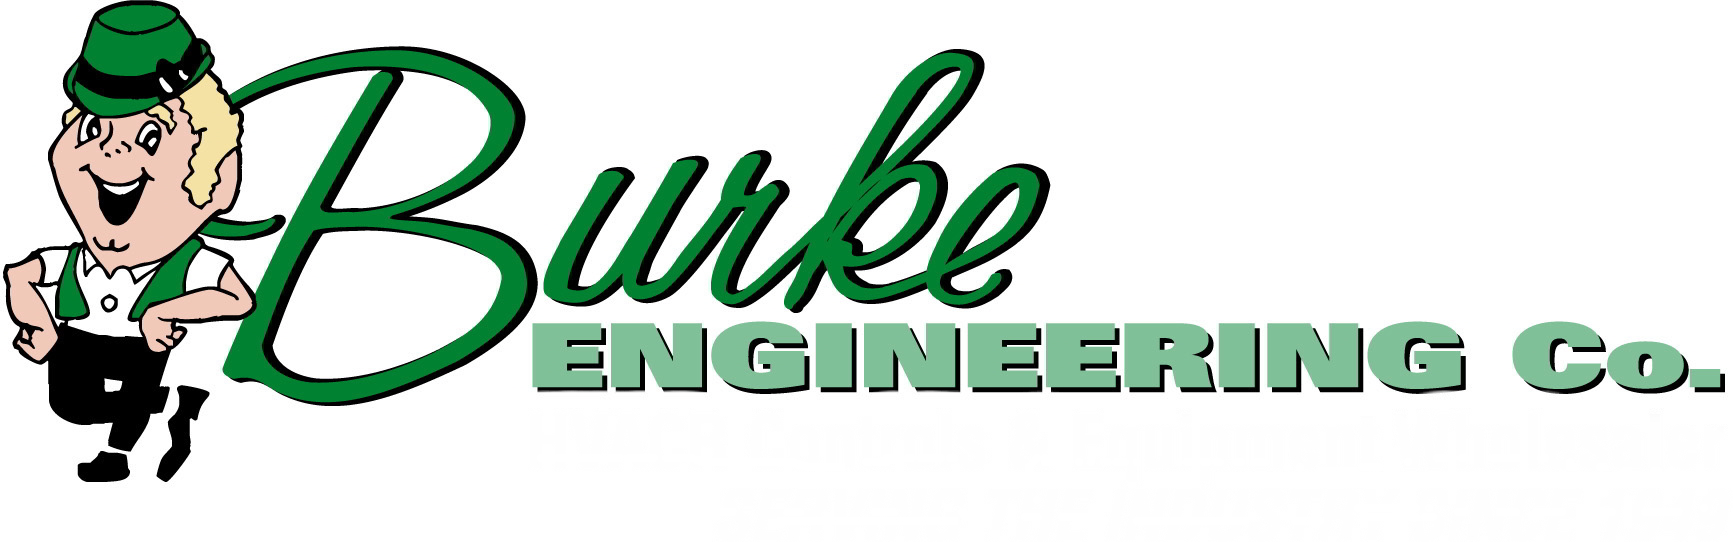 Burke Engineering Sales Company